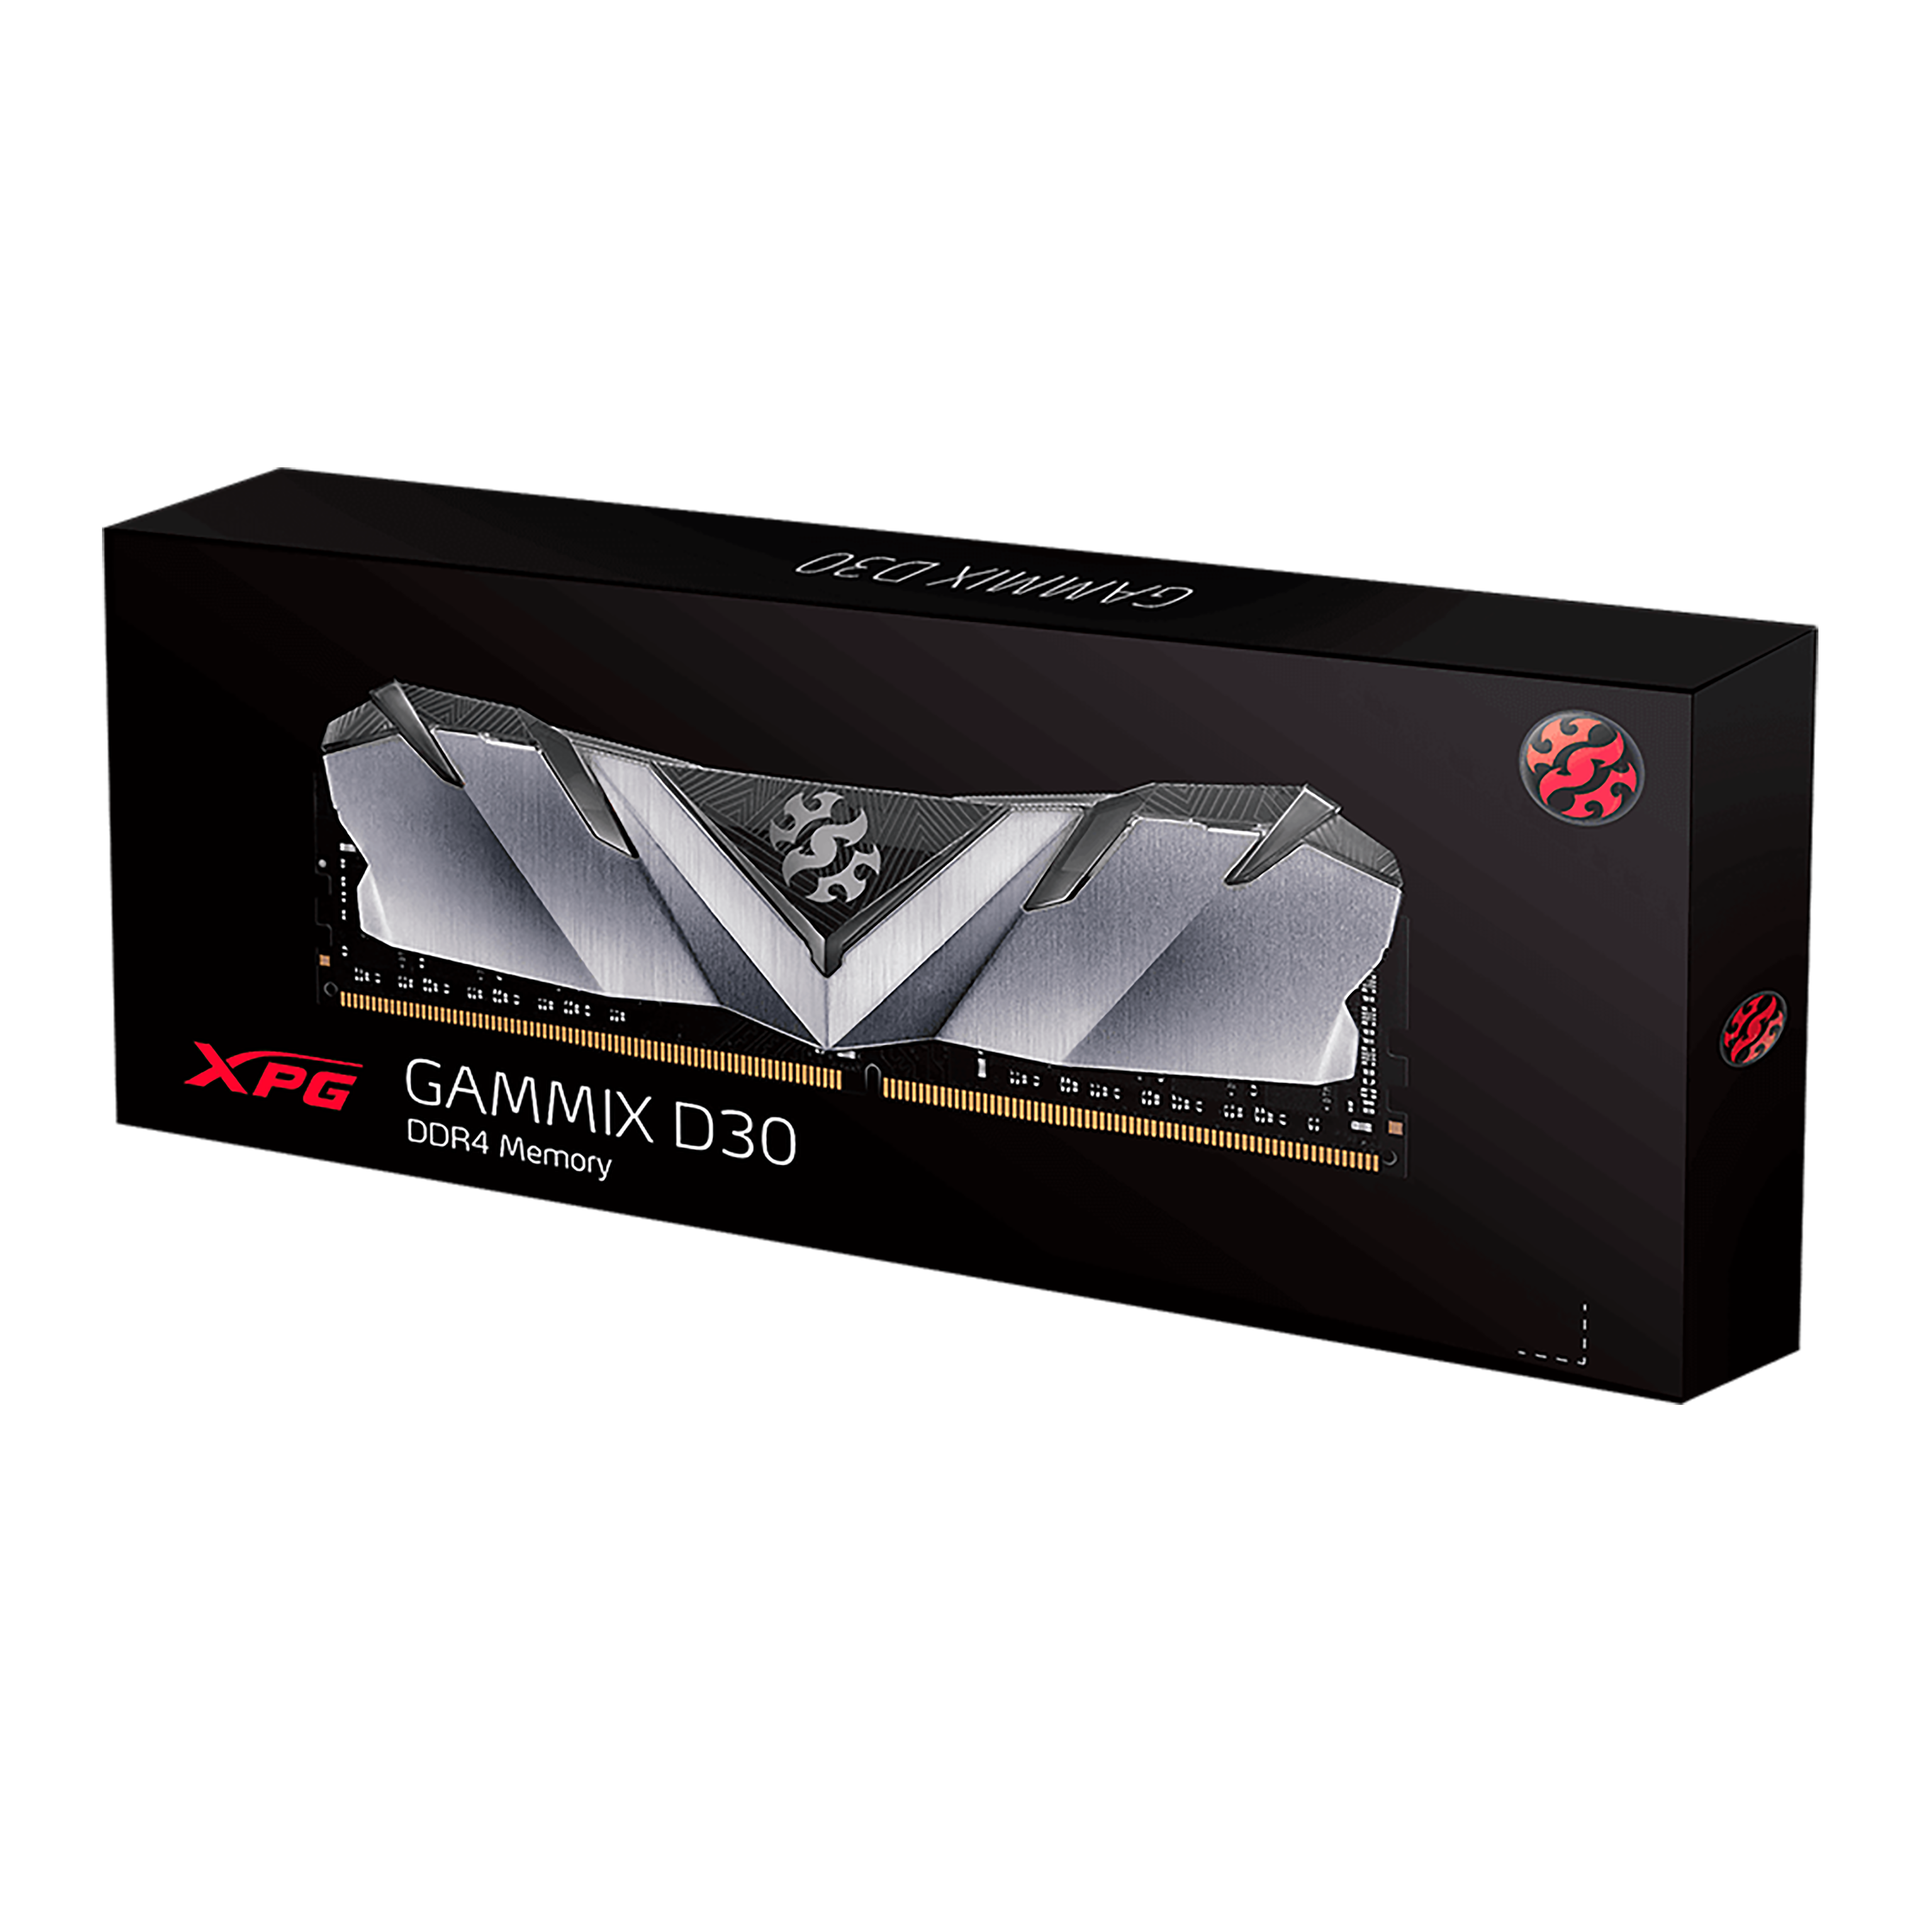 Model - Adata XPG Gammix D30, Capacity(MB) - 8GB, Type - DDR4, Bus Speed(MHz) - 2666MHz, CAS Latency - CL 16-18-18, Voltage - 1.2V, Warranty - Product Lifetime, Others - Black Heatsink Gaming Desktop RAM, Unique heatsink design with edgy wing-shaped, Supports Intel X299 platform and implements 2666MHz, Intel XMP 2.0 more accessible overclocking, RoHS compliant, Part No - AX4U266638G16-SB30